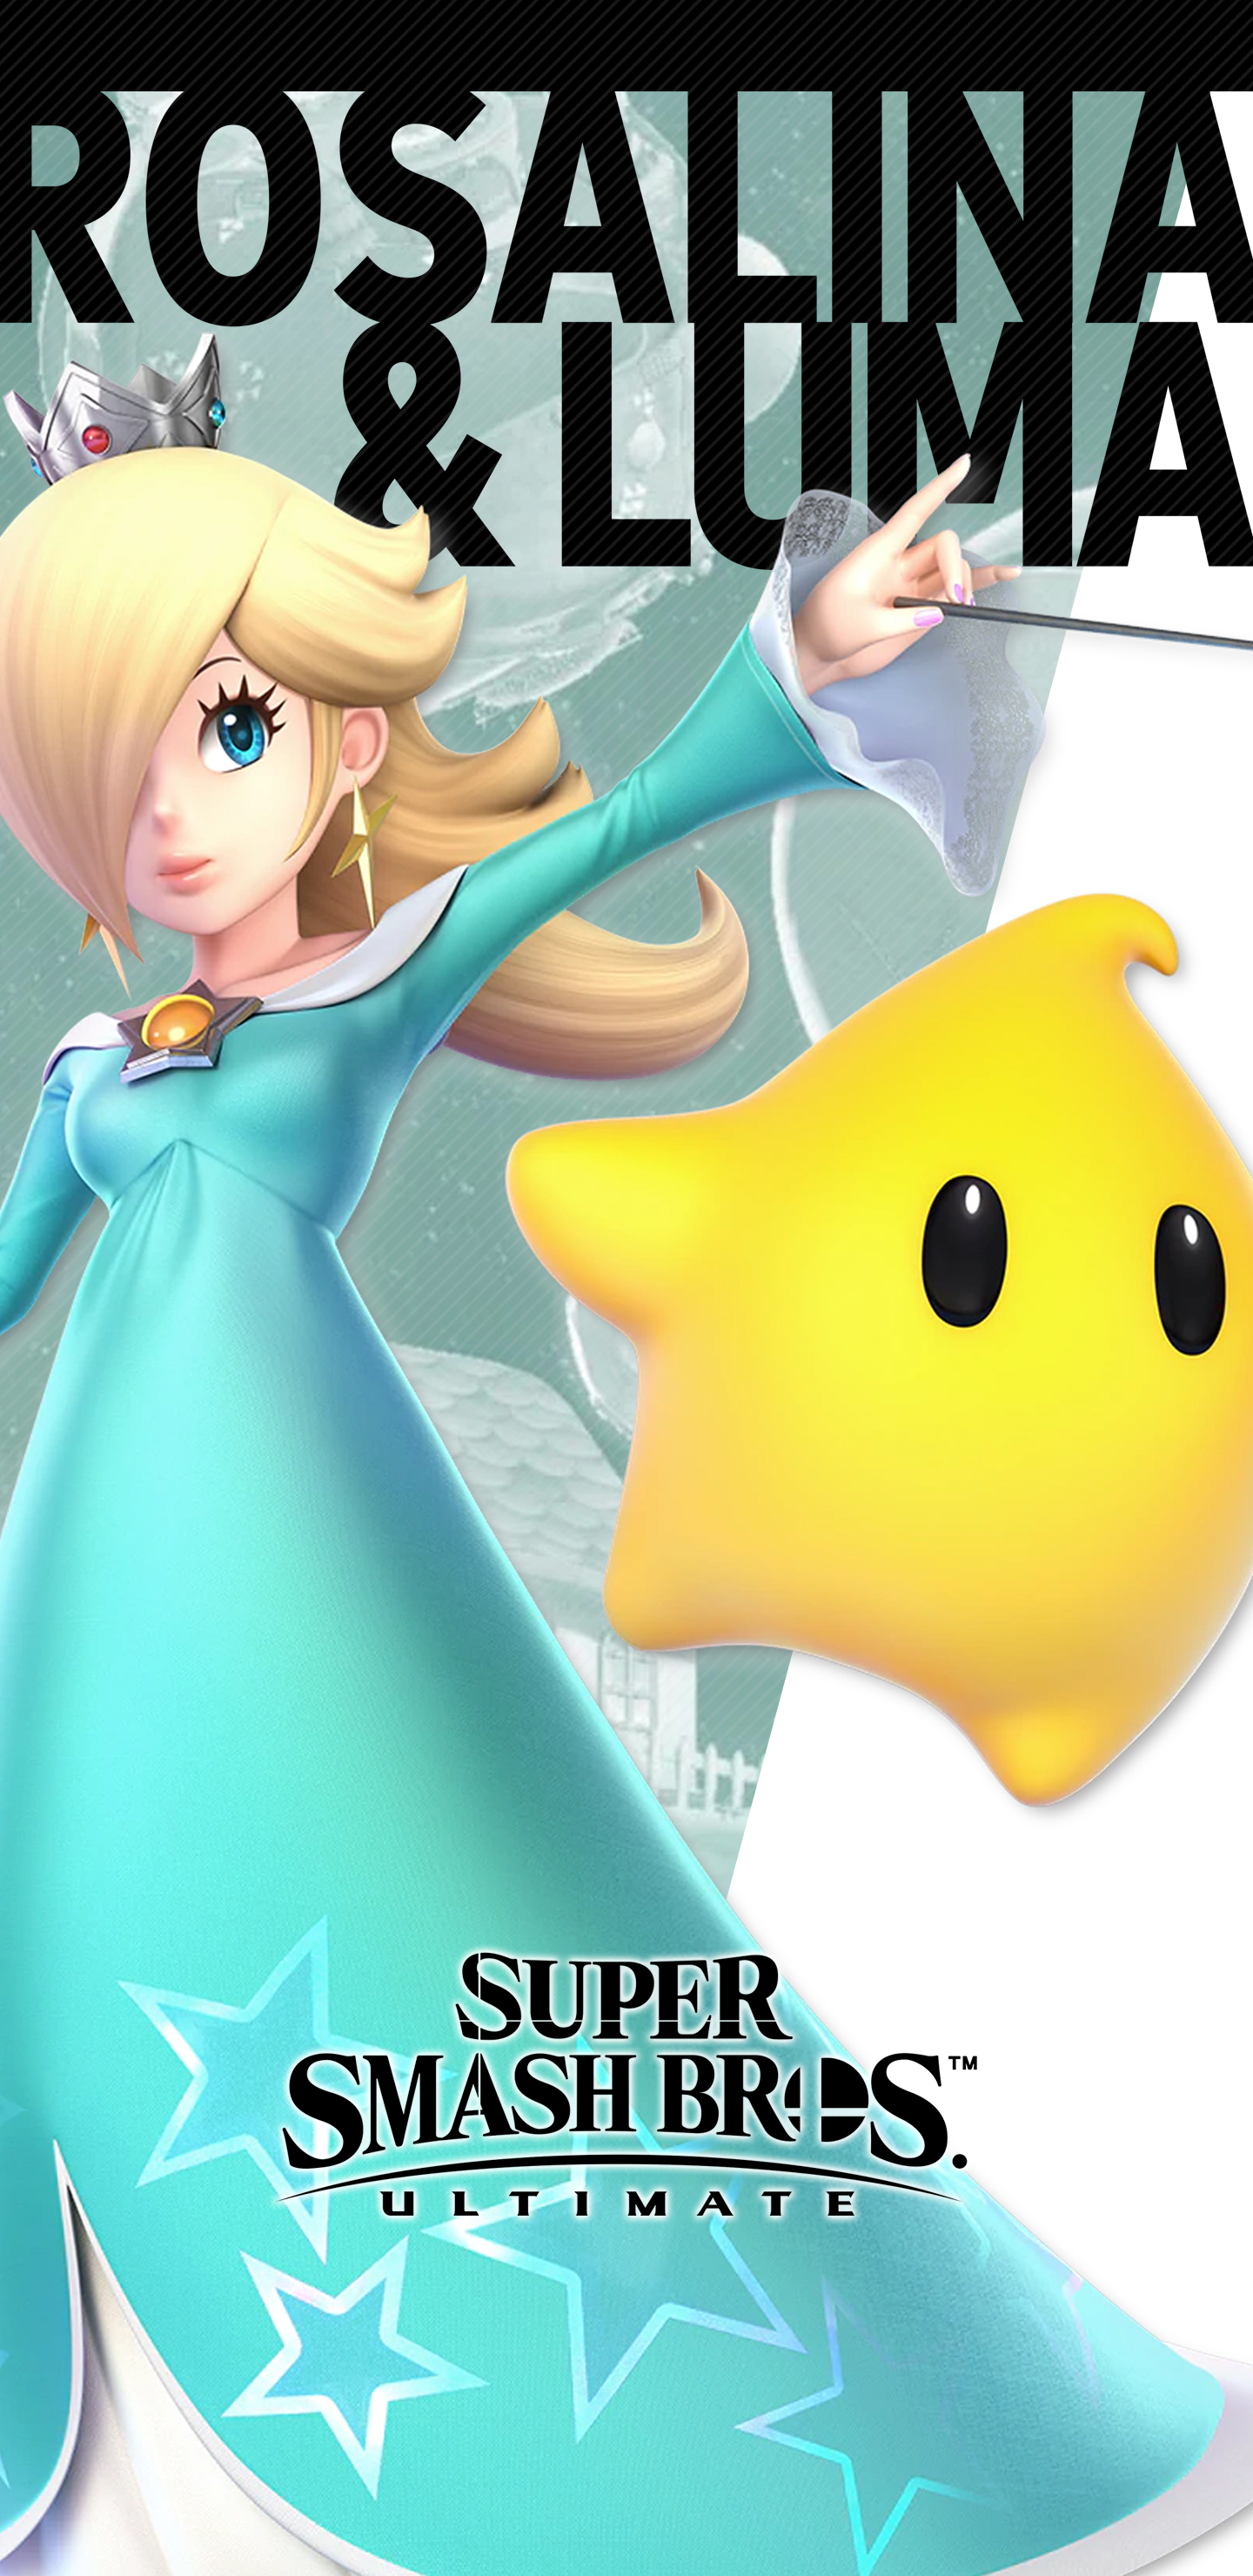 Super Smash Bros Ultimate Rosalina And Luma Wallpapers Cat With